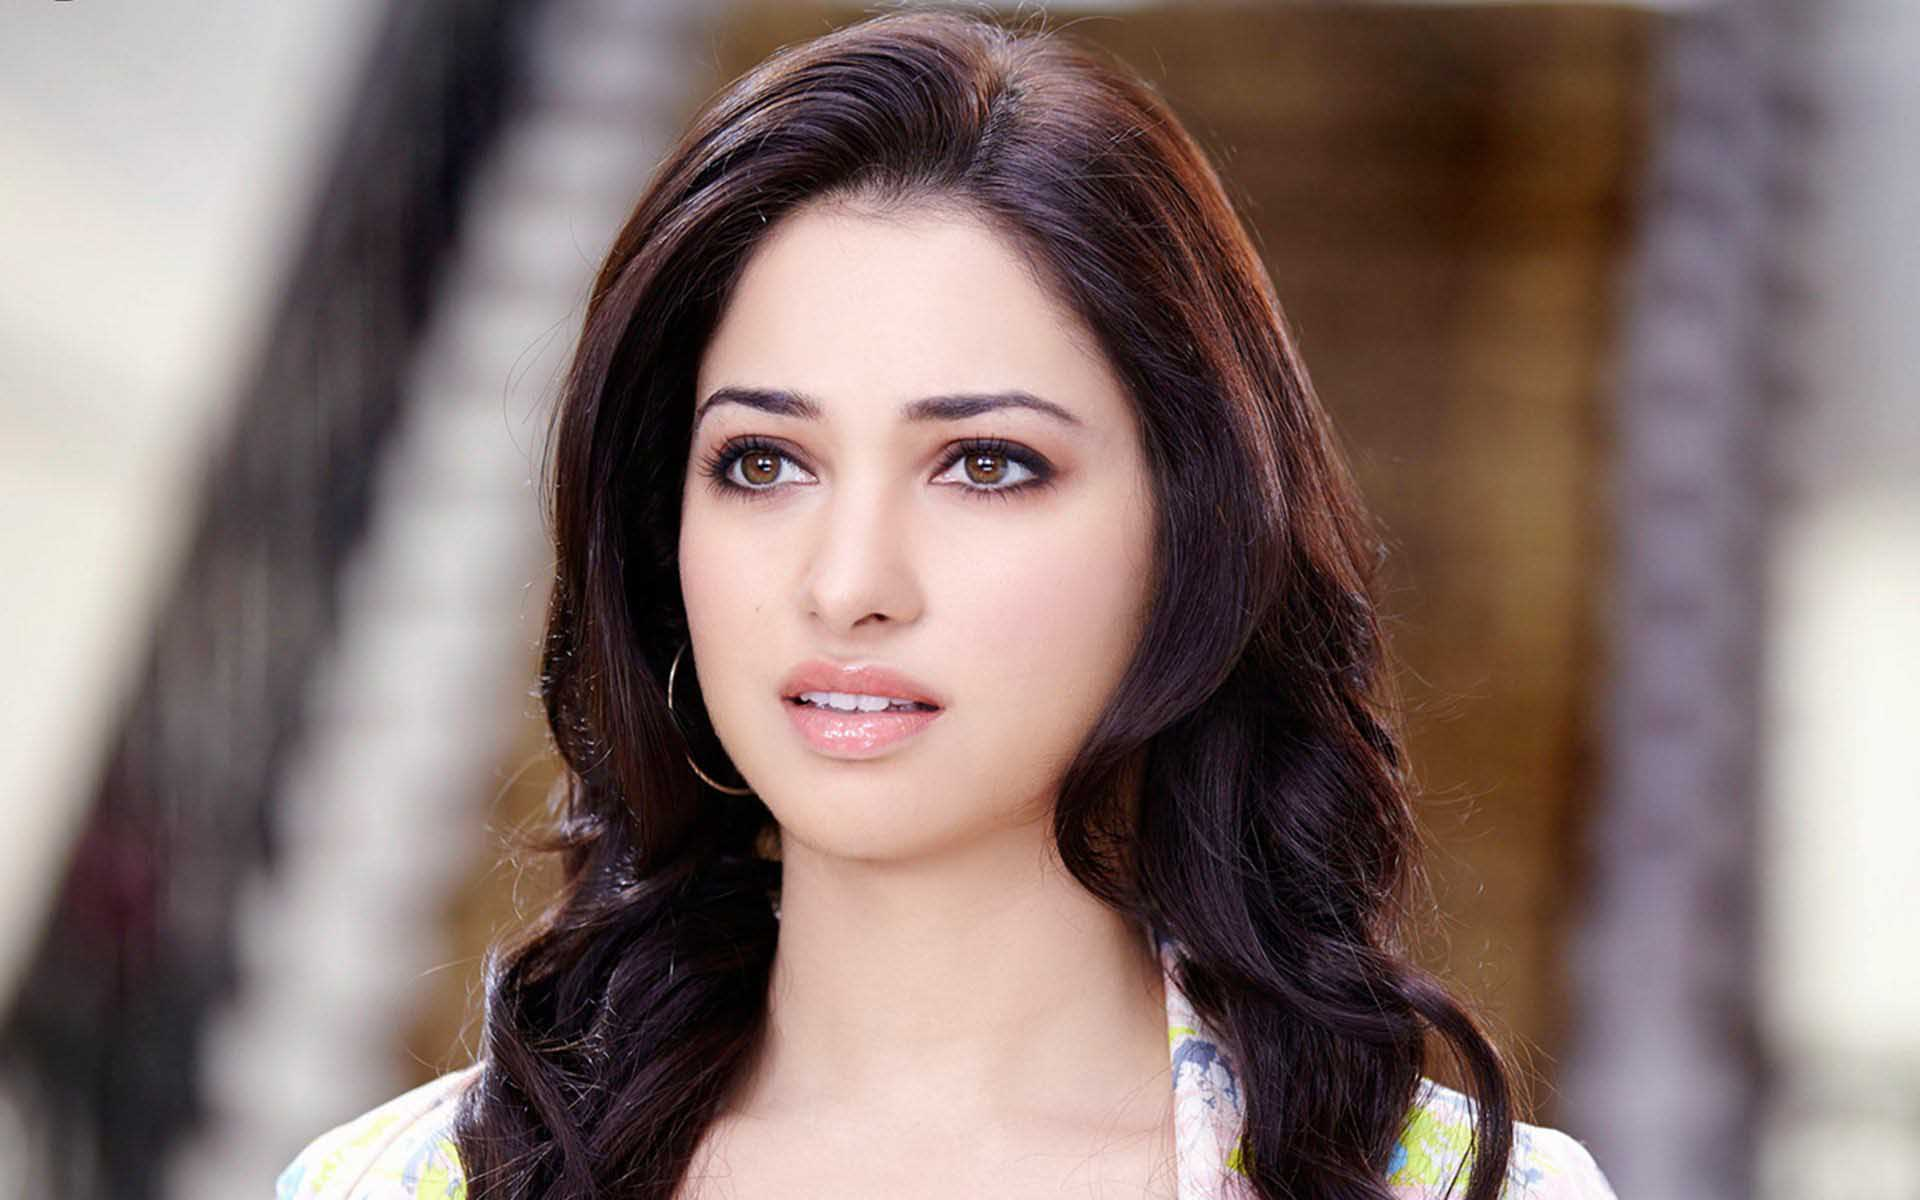 Tamannaah Bhatia Photos(images), Height, Biography, Movies, Date Of Birth, House, Details, Marriage, Boyfriend, Net Worth, Education, Instagram, Facebook, Twitter, Wiki, Imdb, Youtube (18)